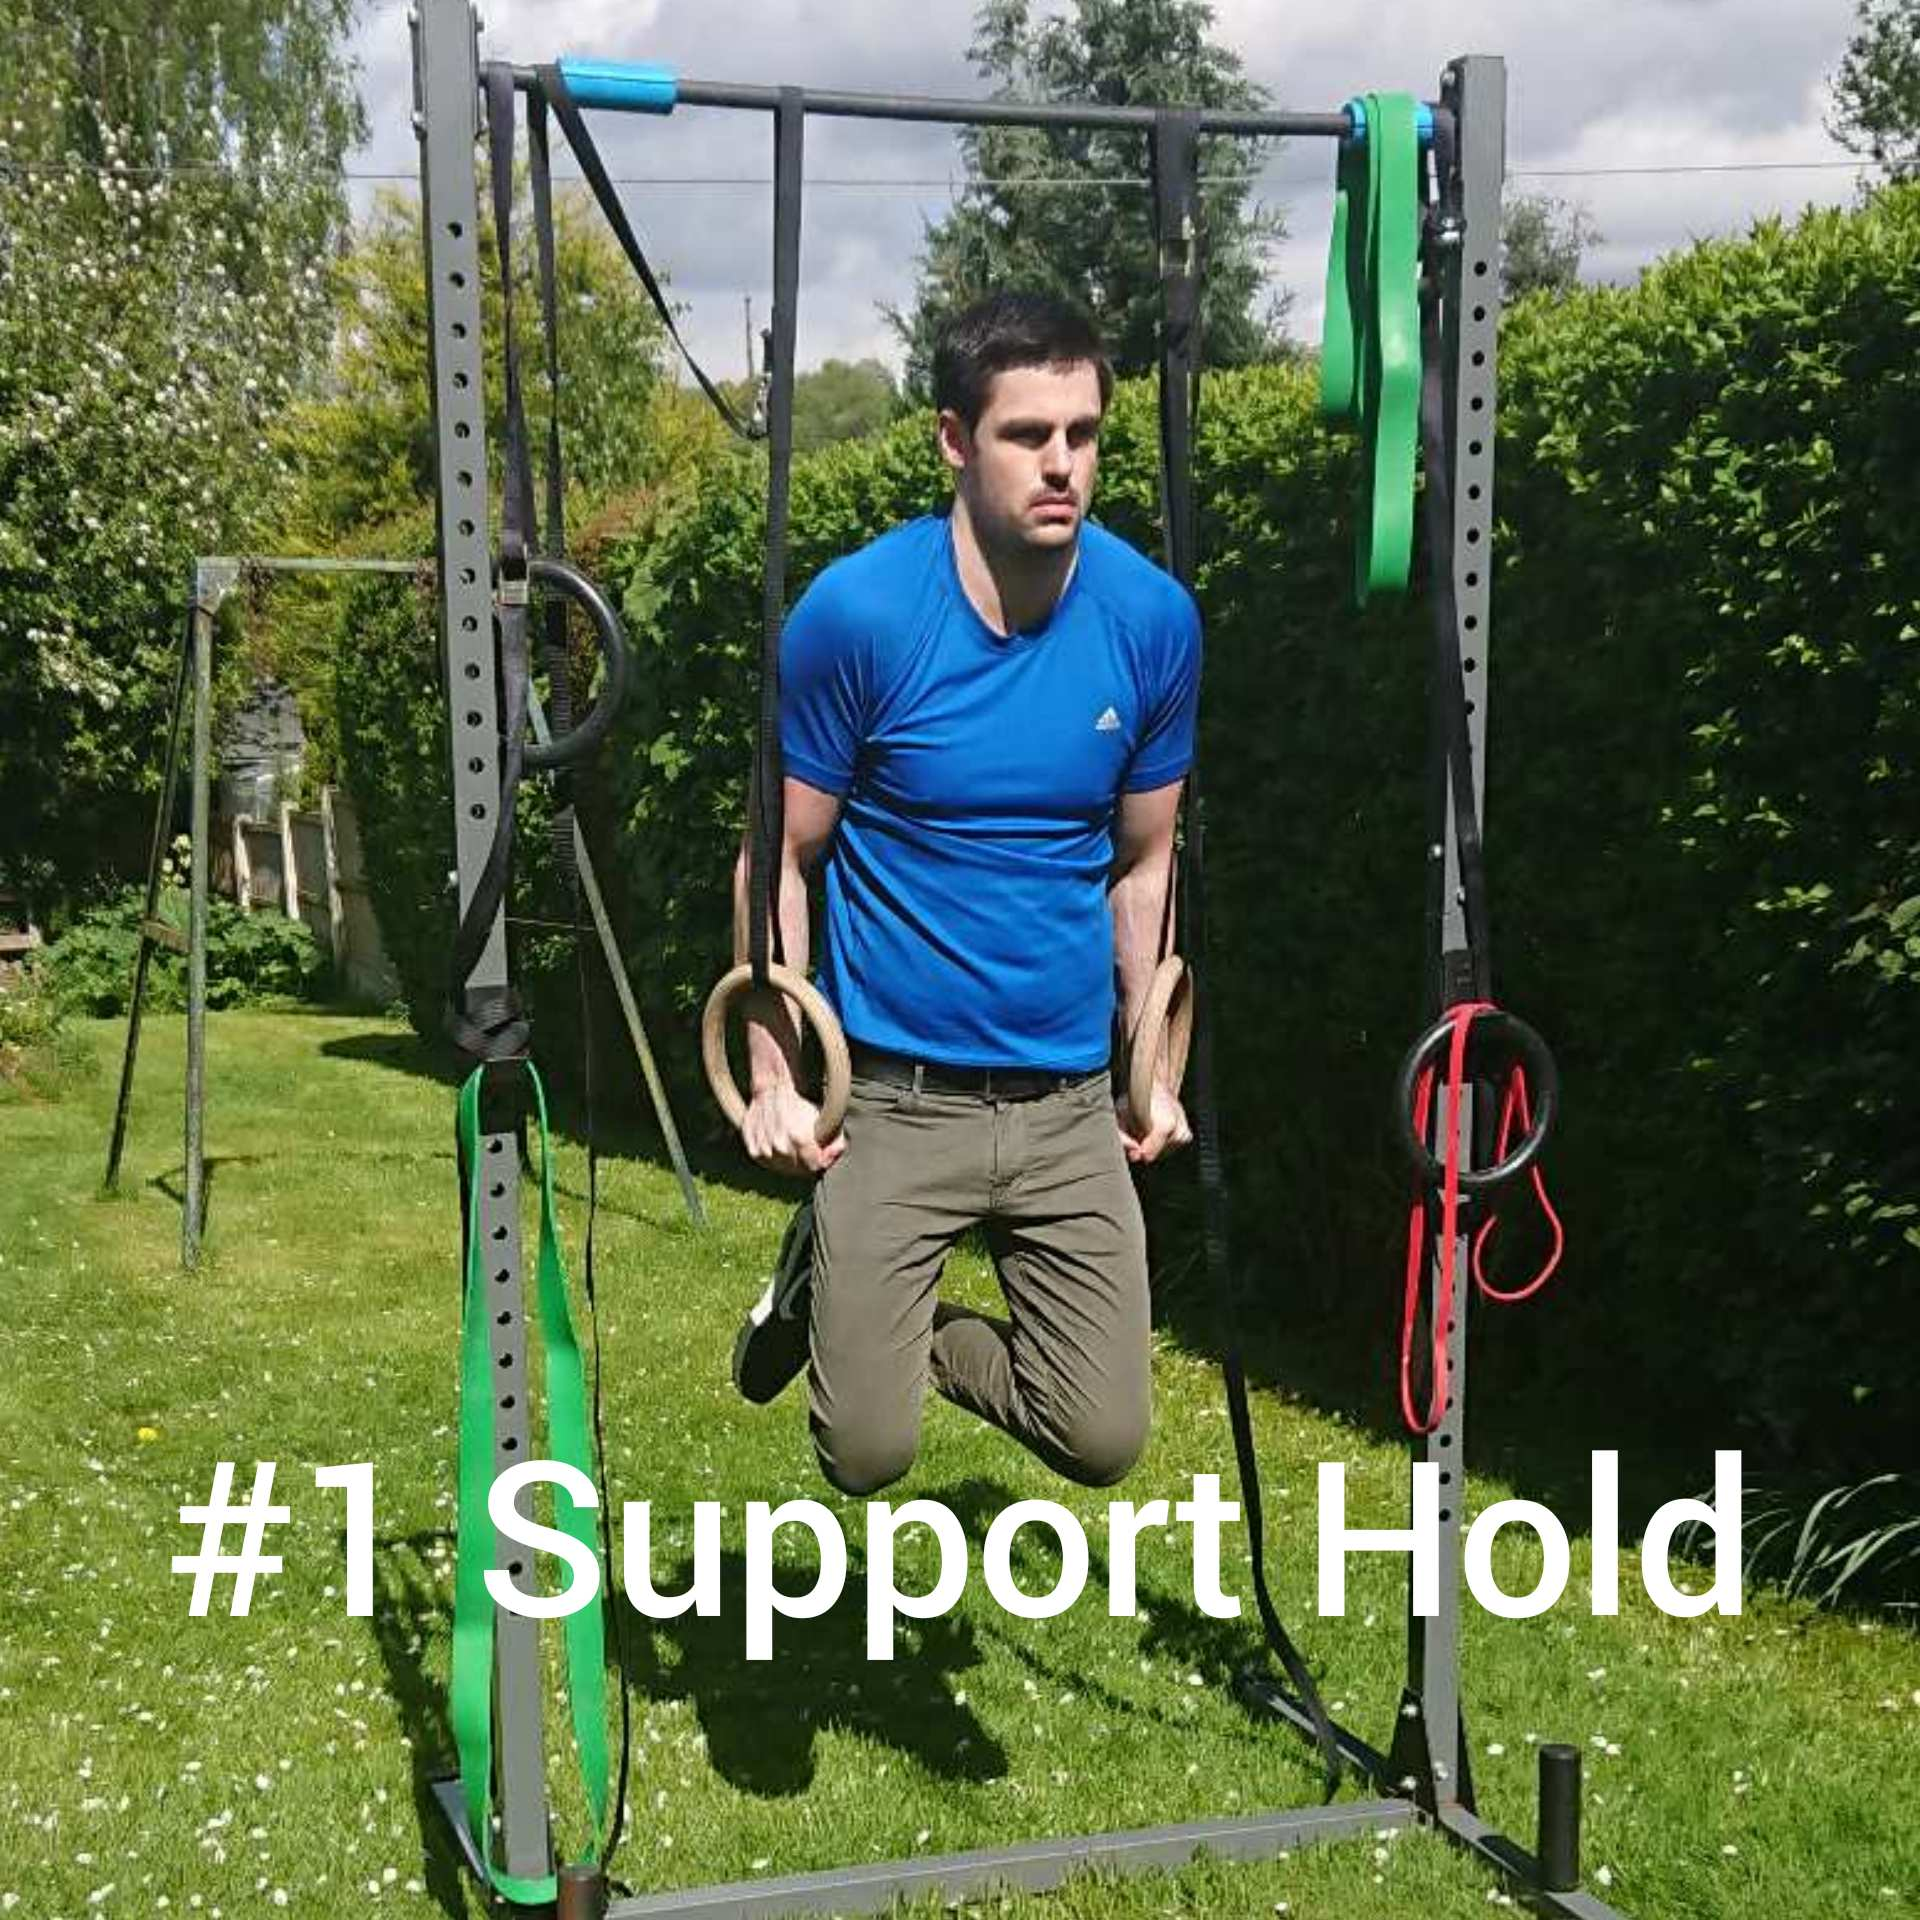 Support hold